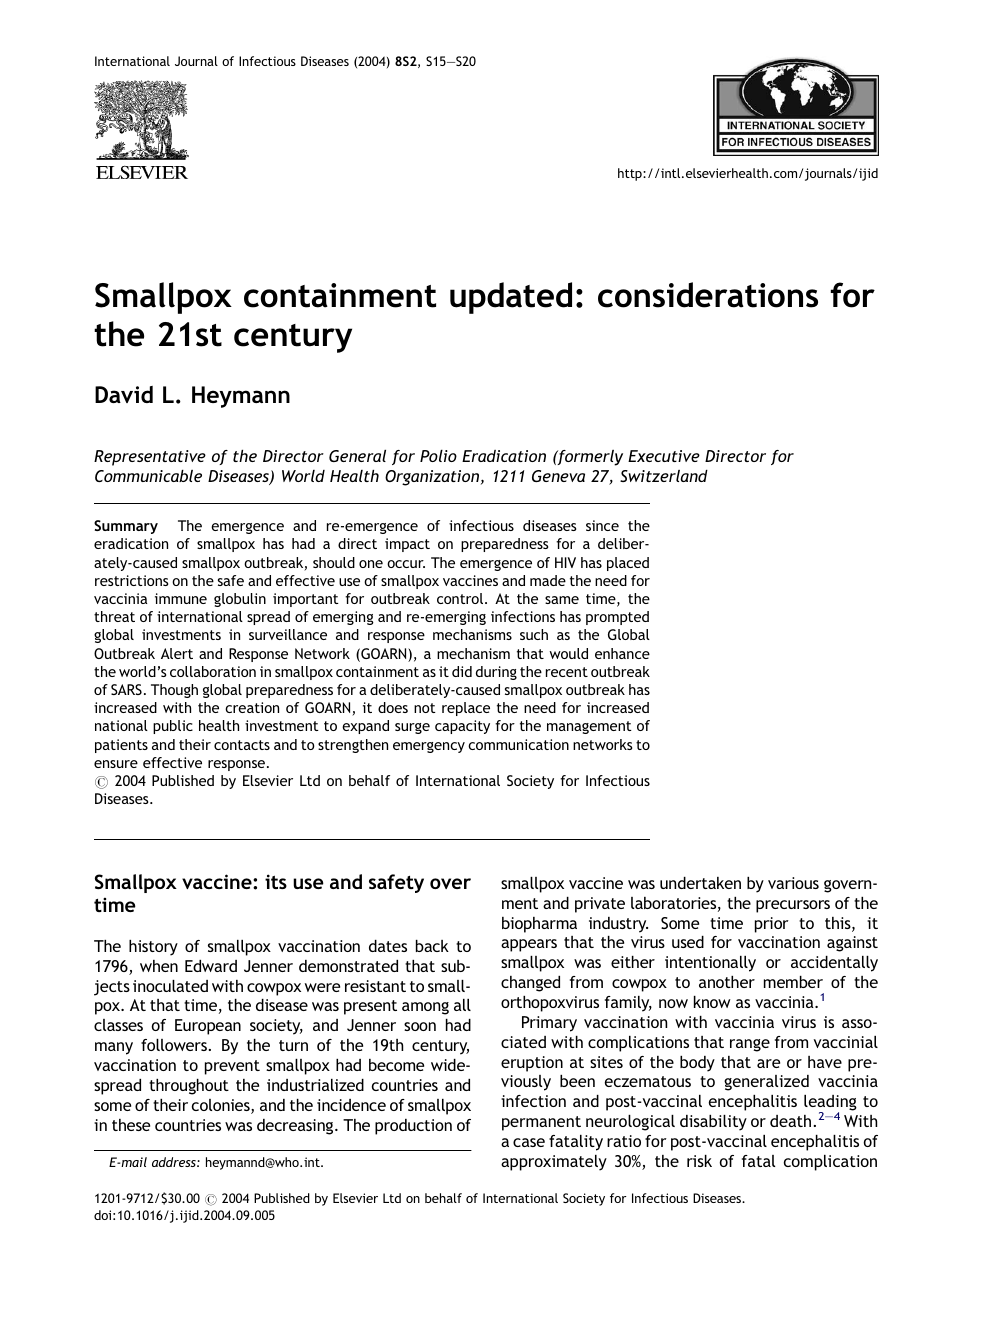 Smallpox containment updated: considerations for the 21st